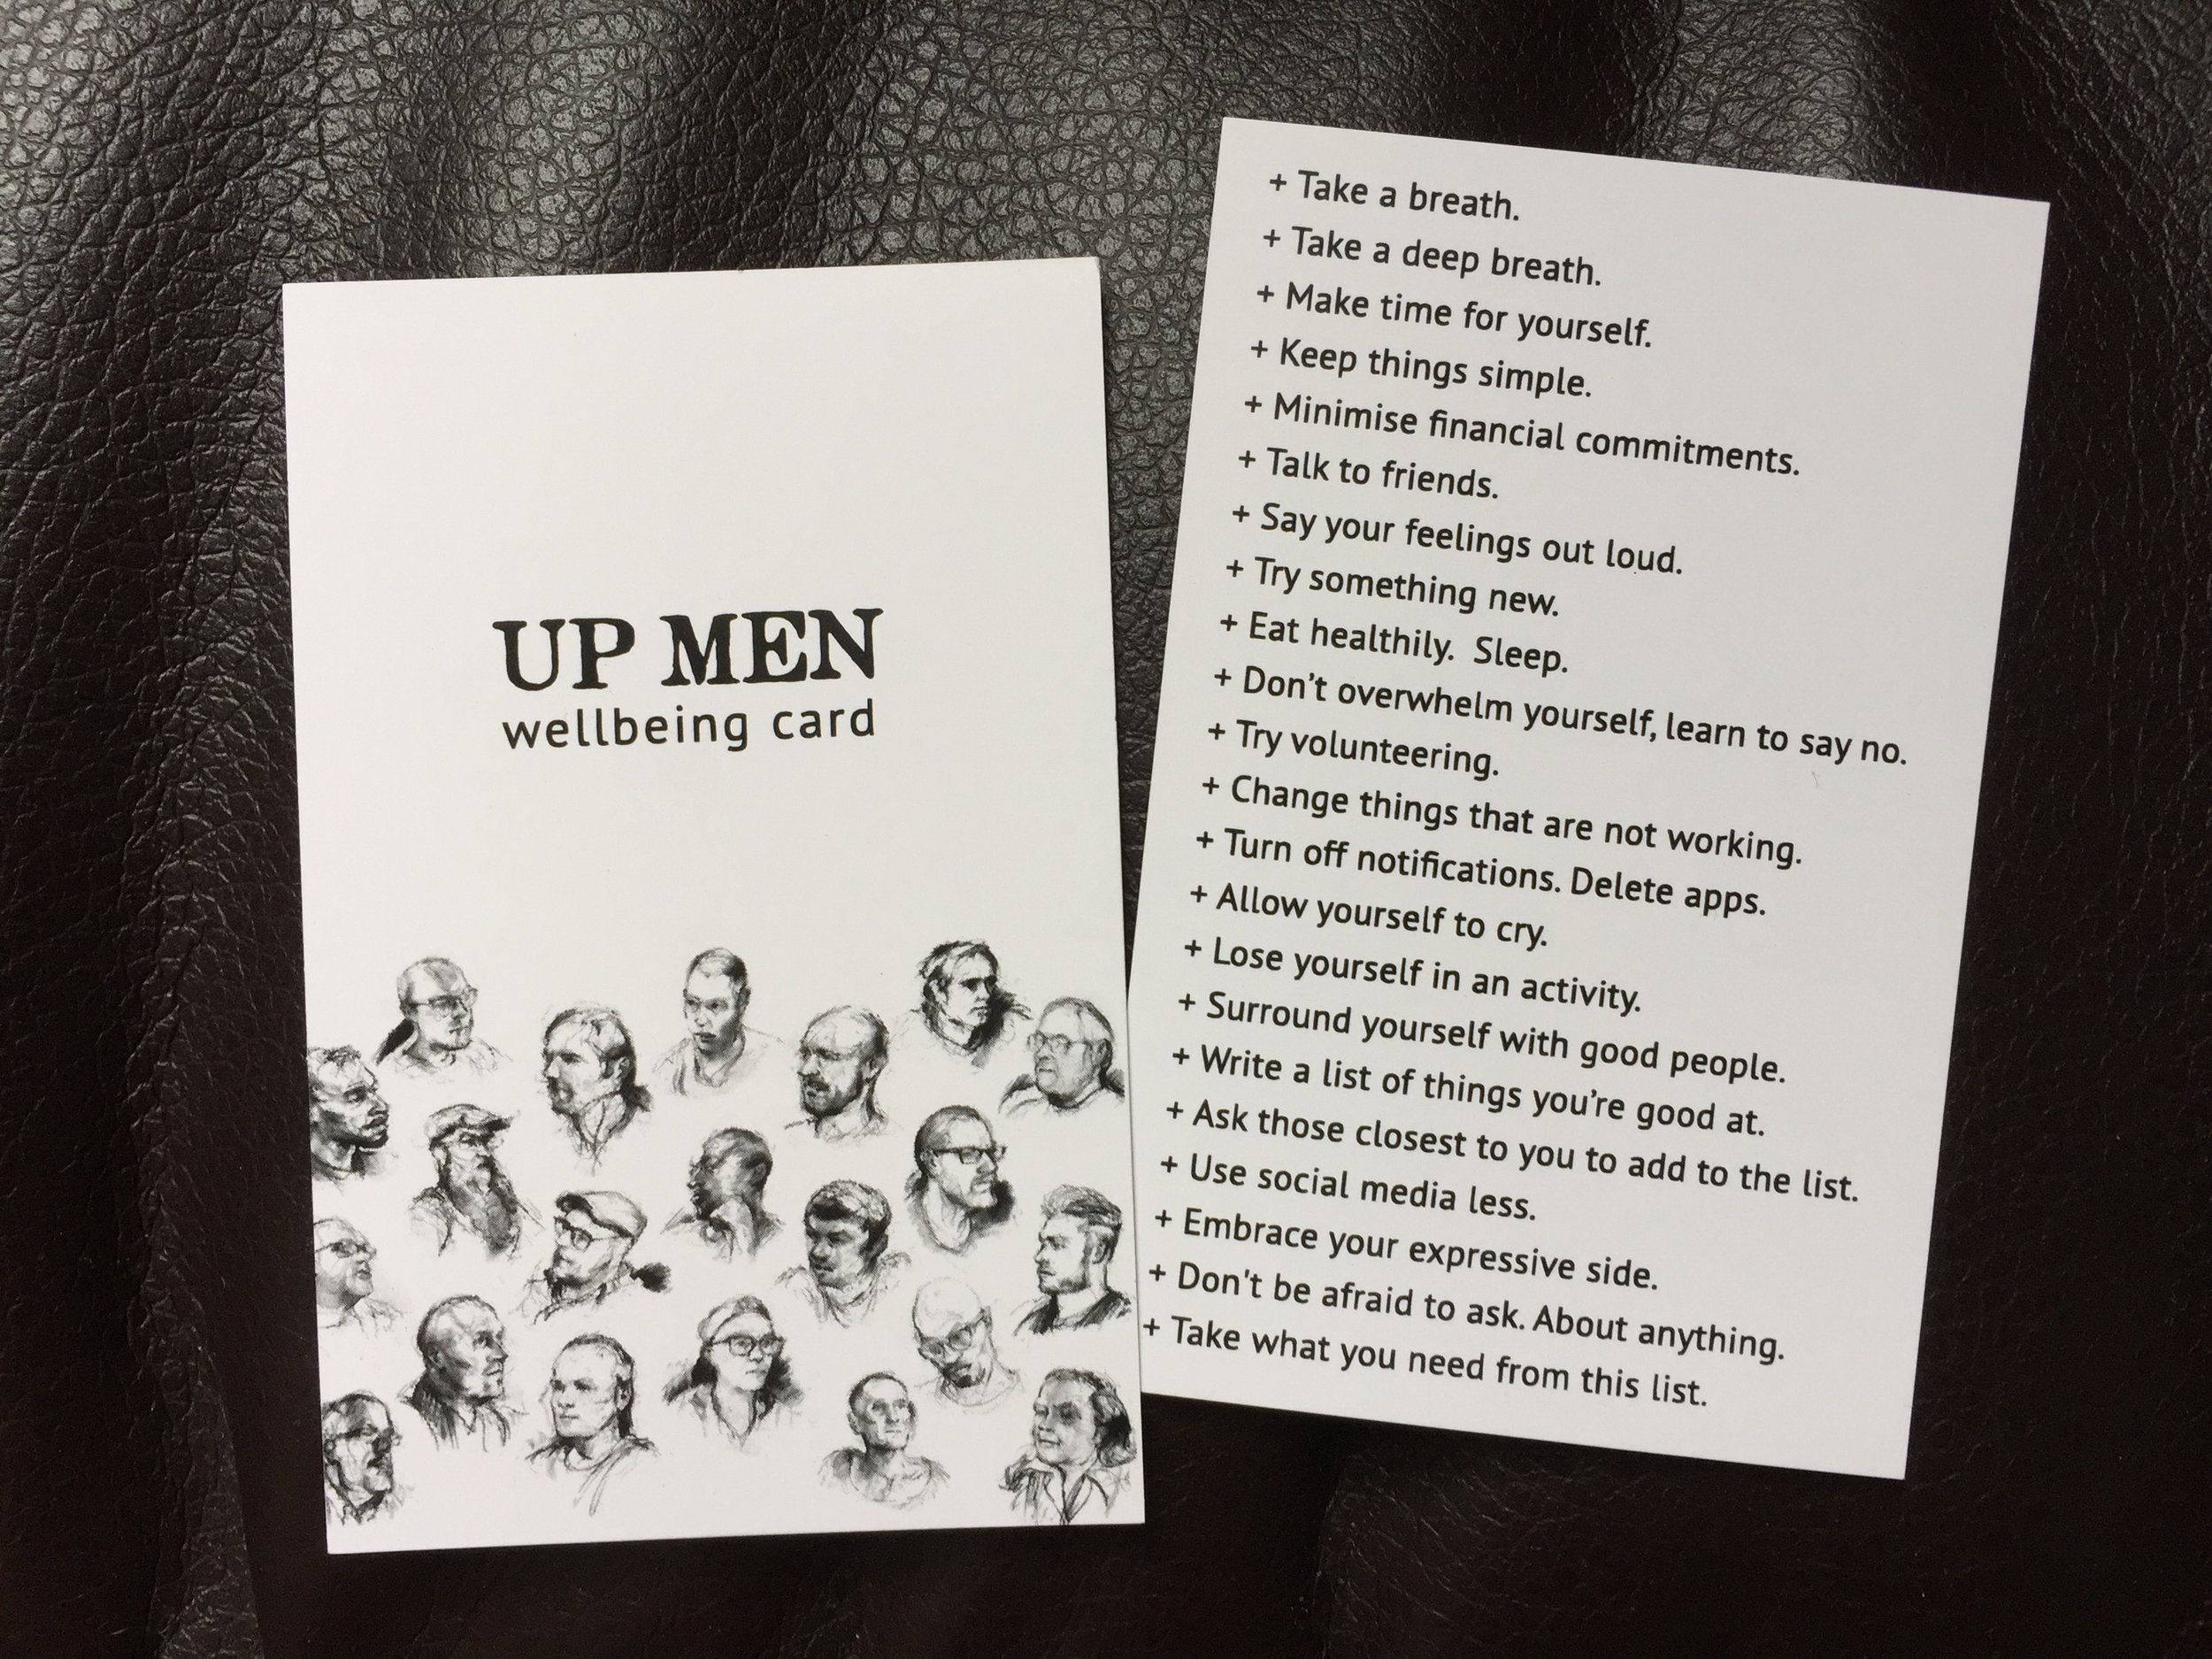 The original Man Up wellbeing cards.